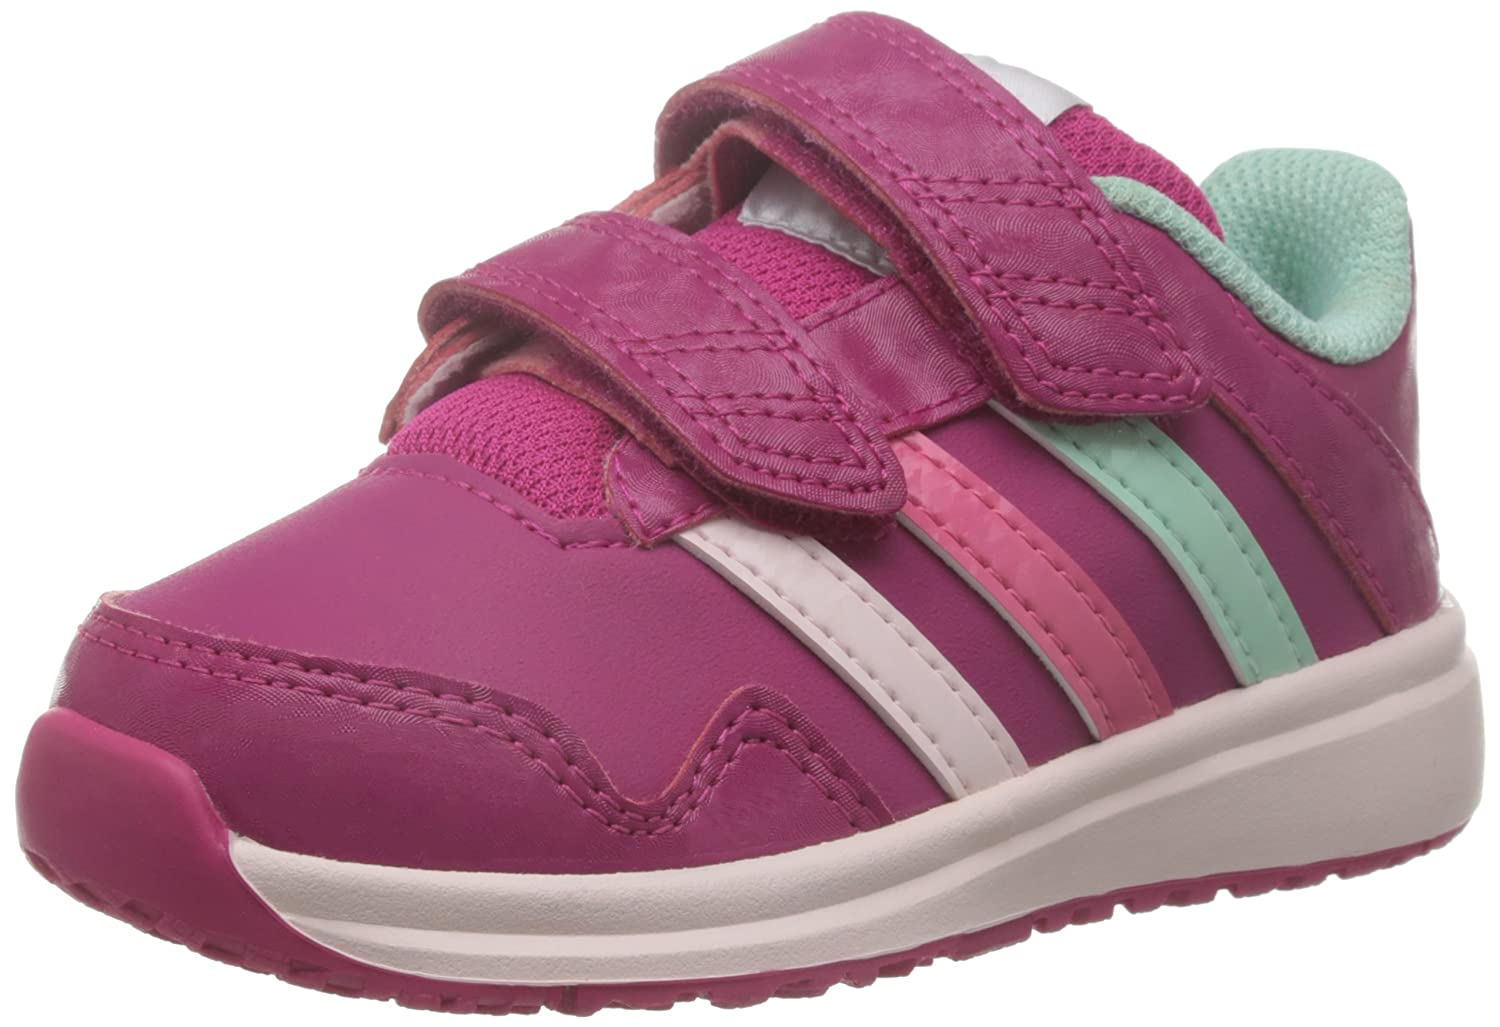 adidas Unisex Babies Snice 4 CF I Low-Top Sneakers adidas Performance AF4352